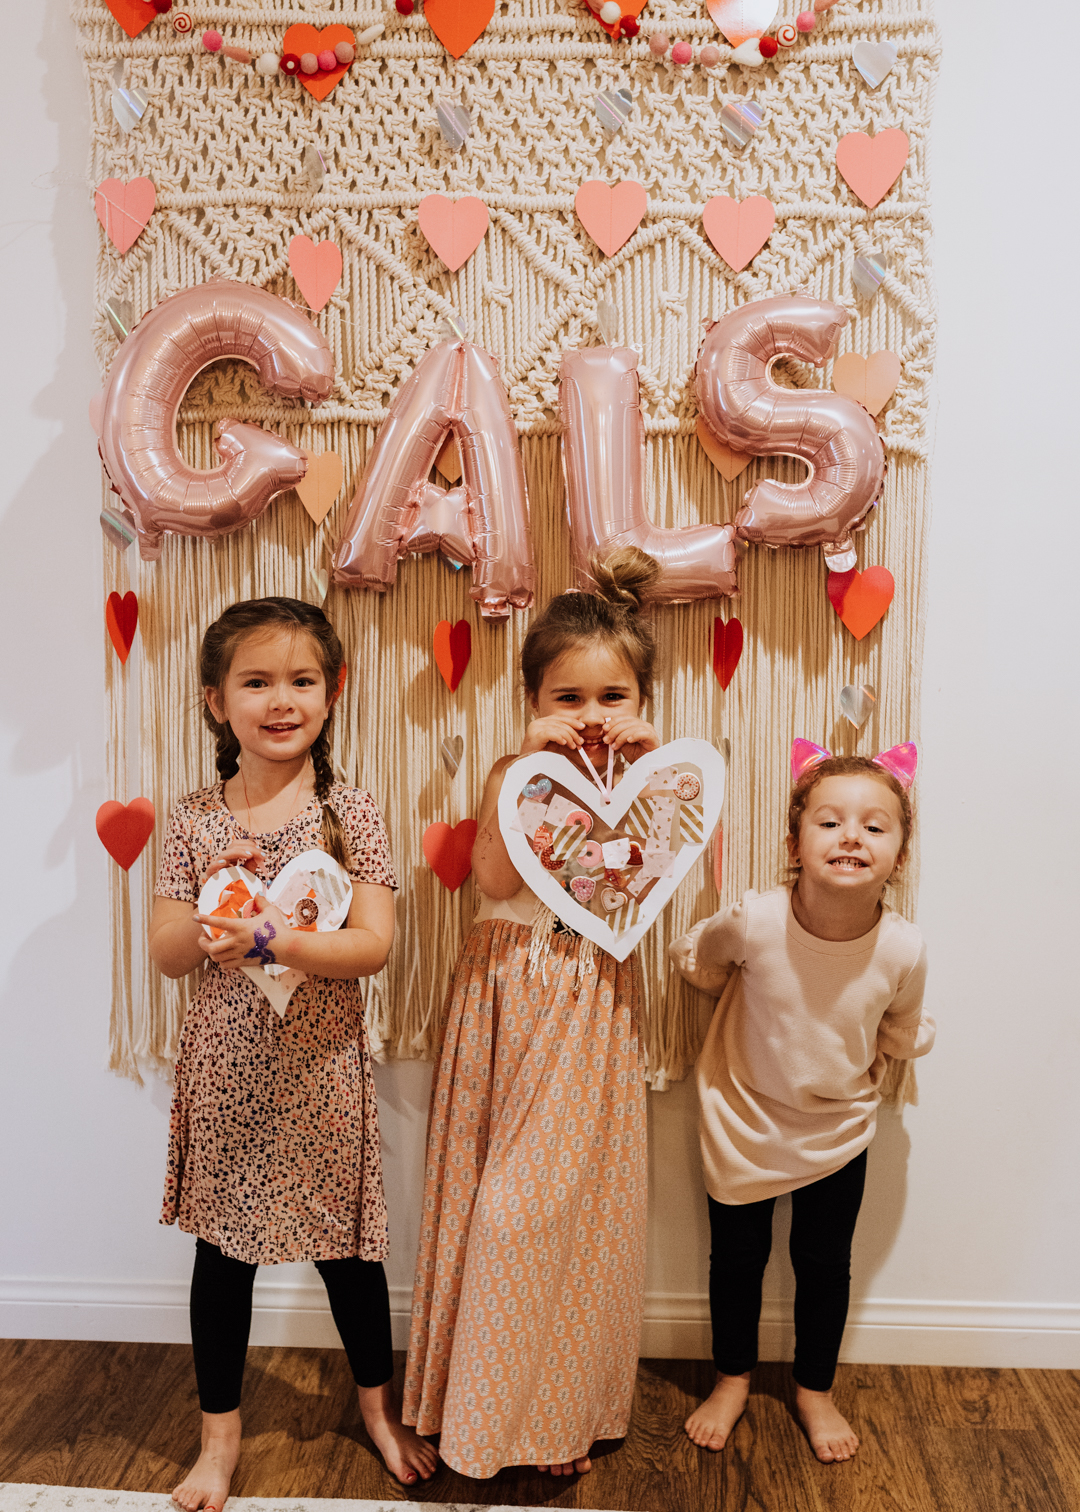 gals with their finished suncatcher heart | thelovedesignedlife.com #heartcraft #suncatcher #galentines